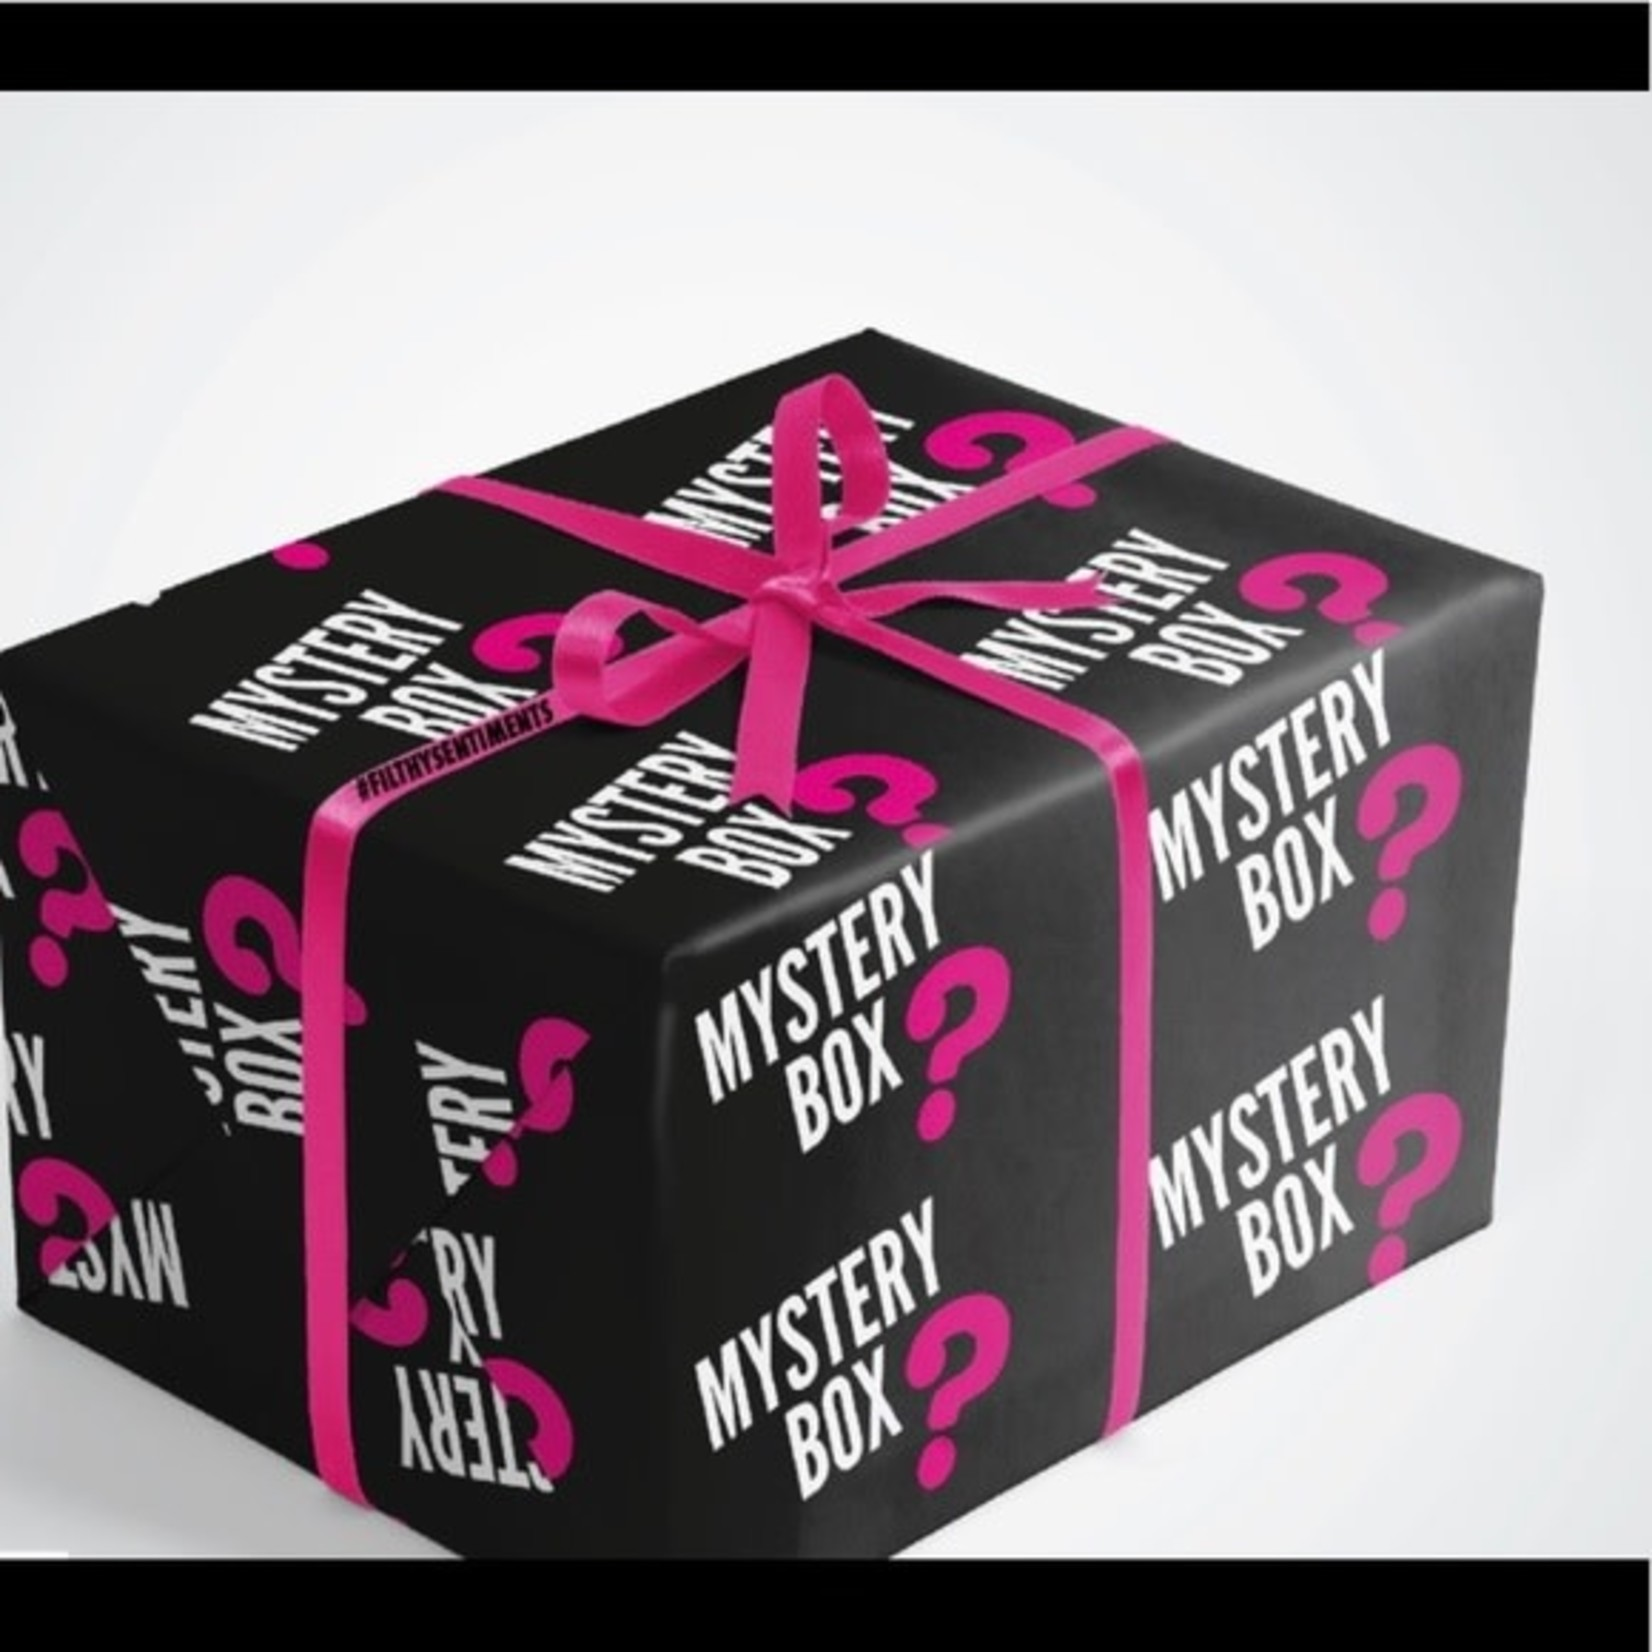 For Him Mystery Box